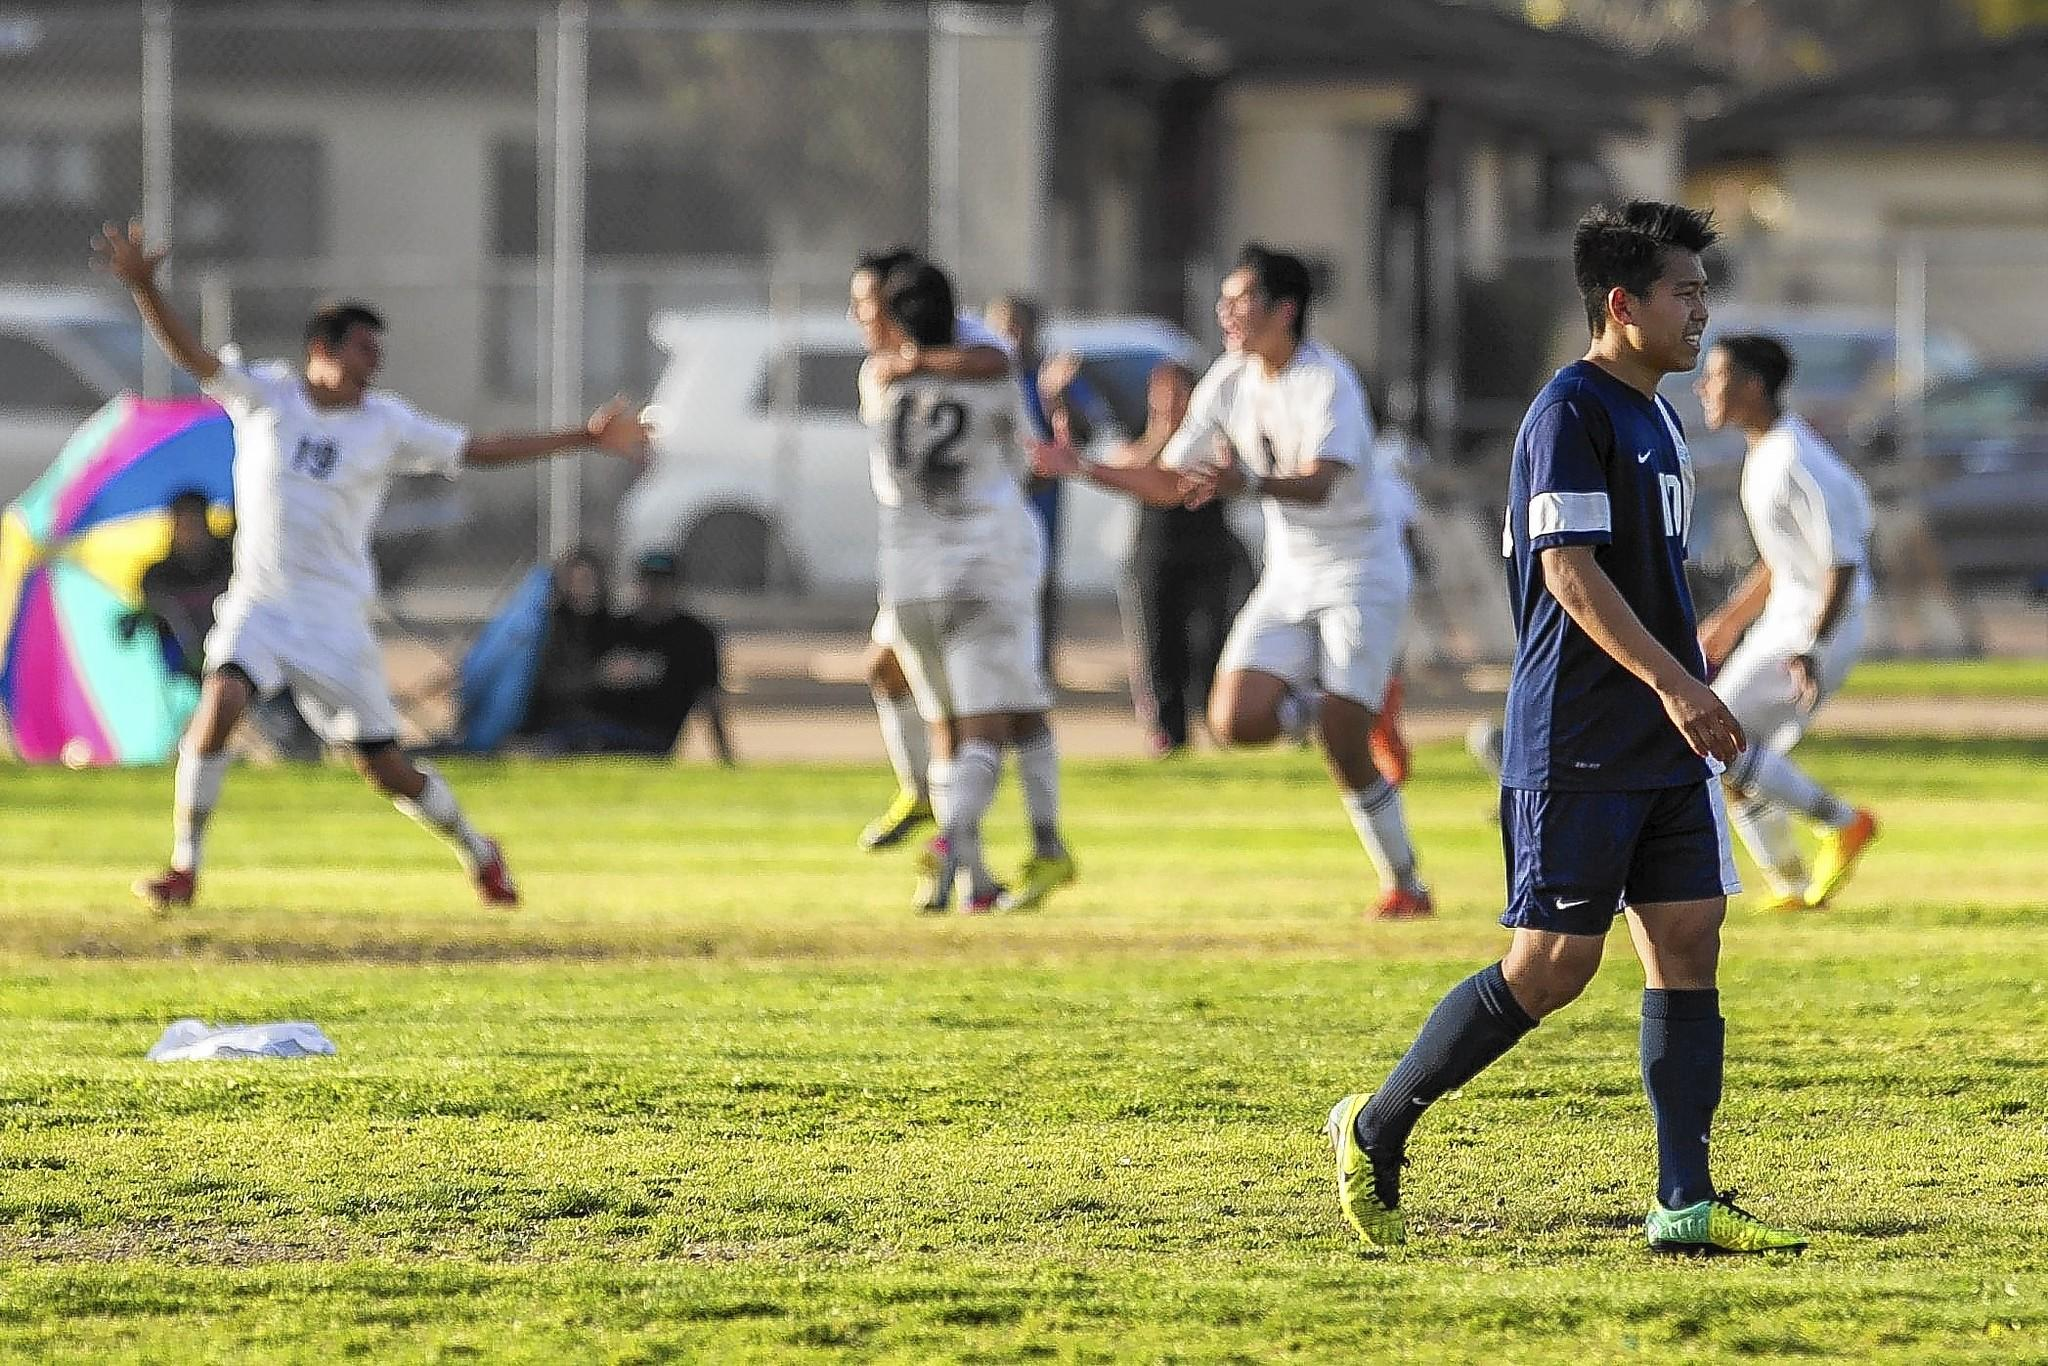 Corona del Mar High's Jake Kim leaves the field as Anaheim celebrates a goal in a sudden-death overtime win during a second round CIF Southern Section Division III playoff game on Tuesday.